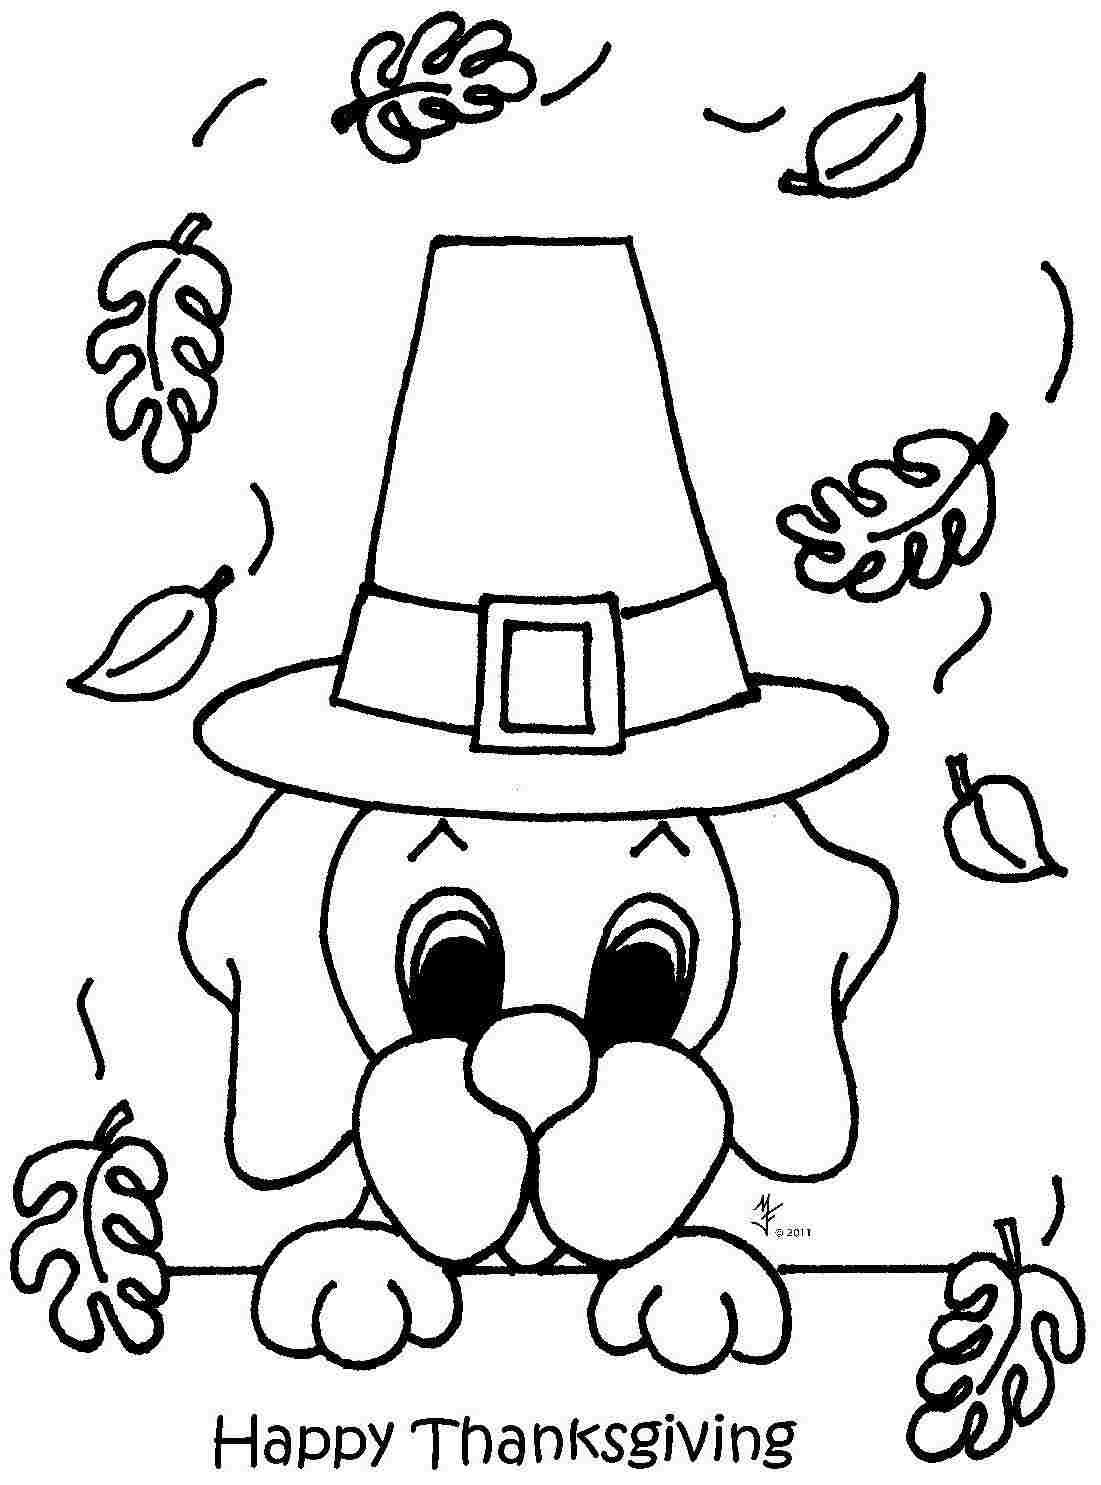 Thanksgiving Drawing Pictures At Getdrawings Com Free For Personal